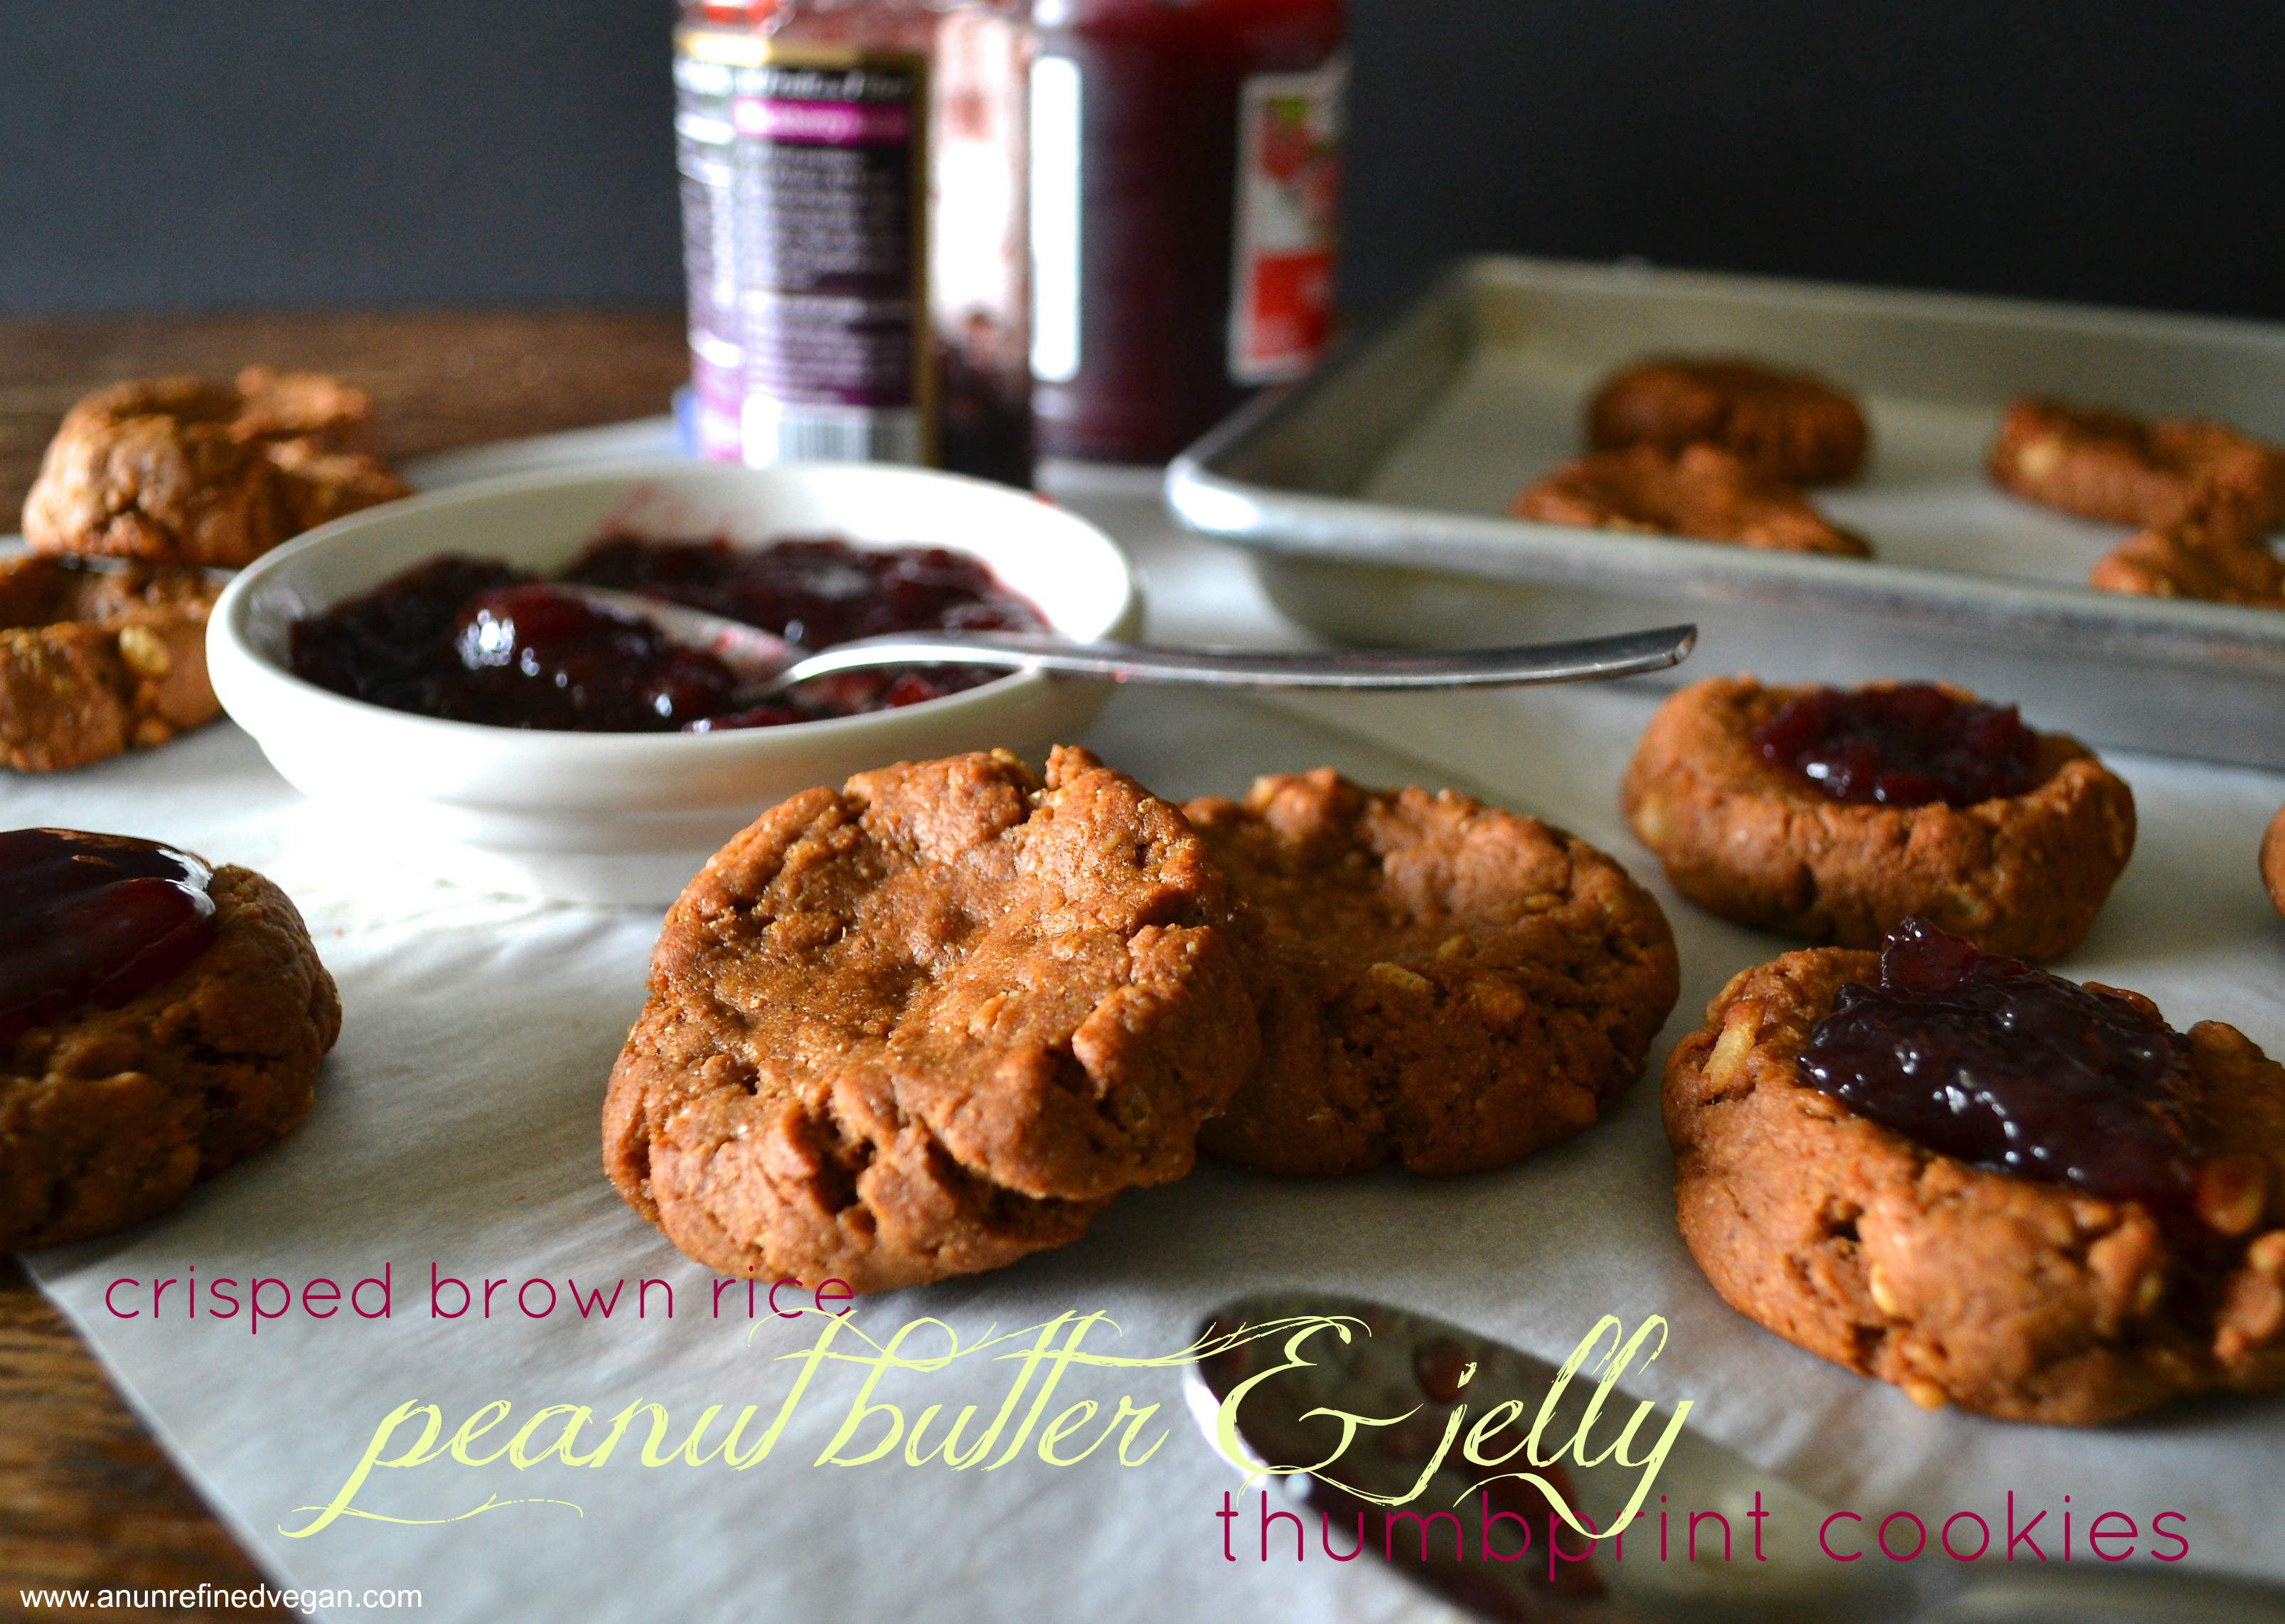 peanut butter jelly thumbprint cookies